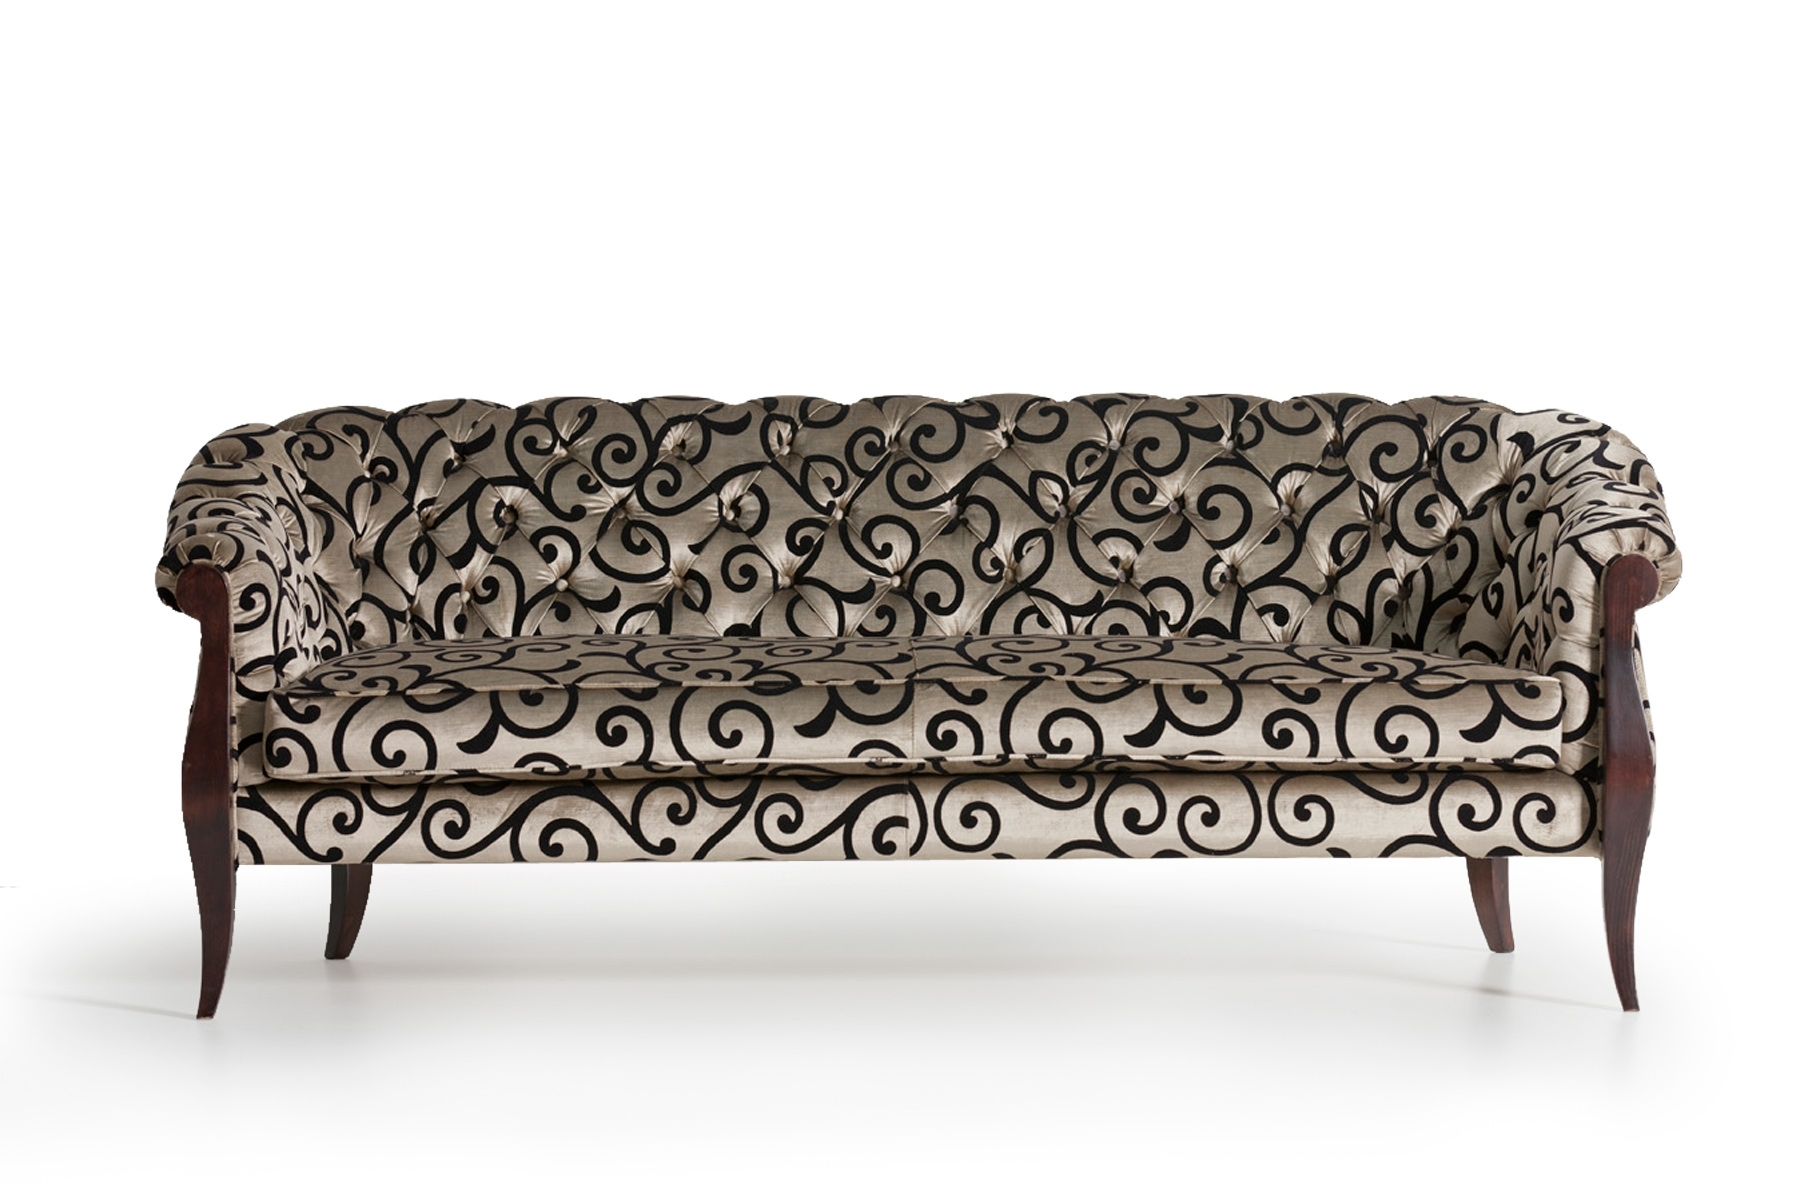 Sofa Design: Pillows Dreamstime Classic Sofas Isolated Handmade within Classic Sofas (Image 10 of 10)